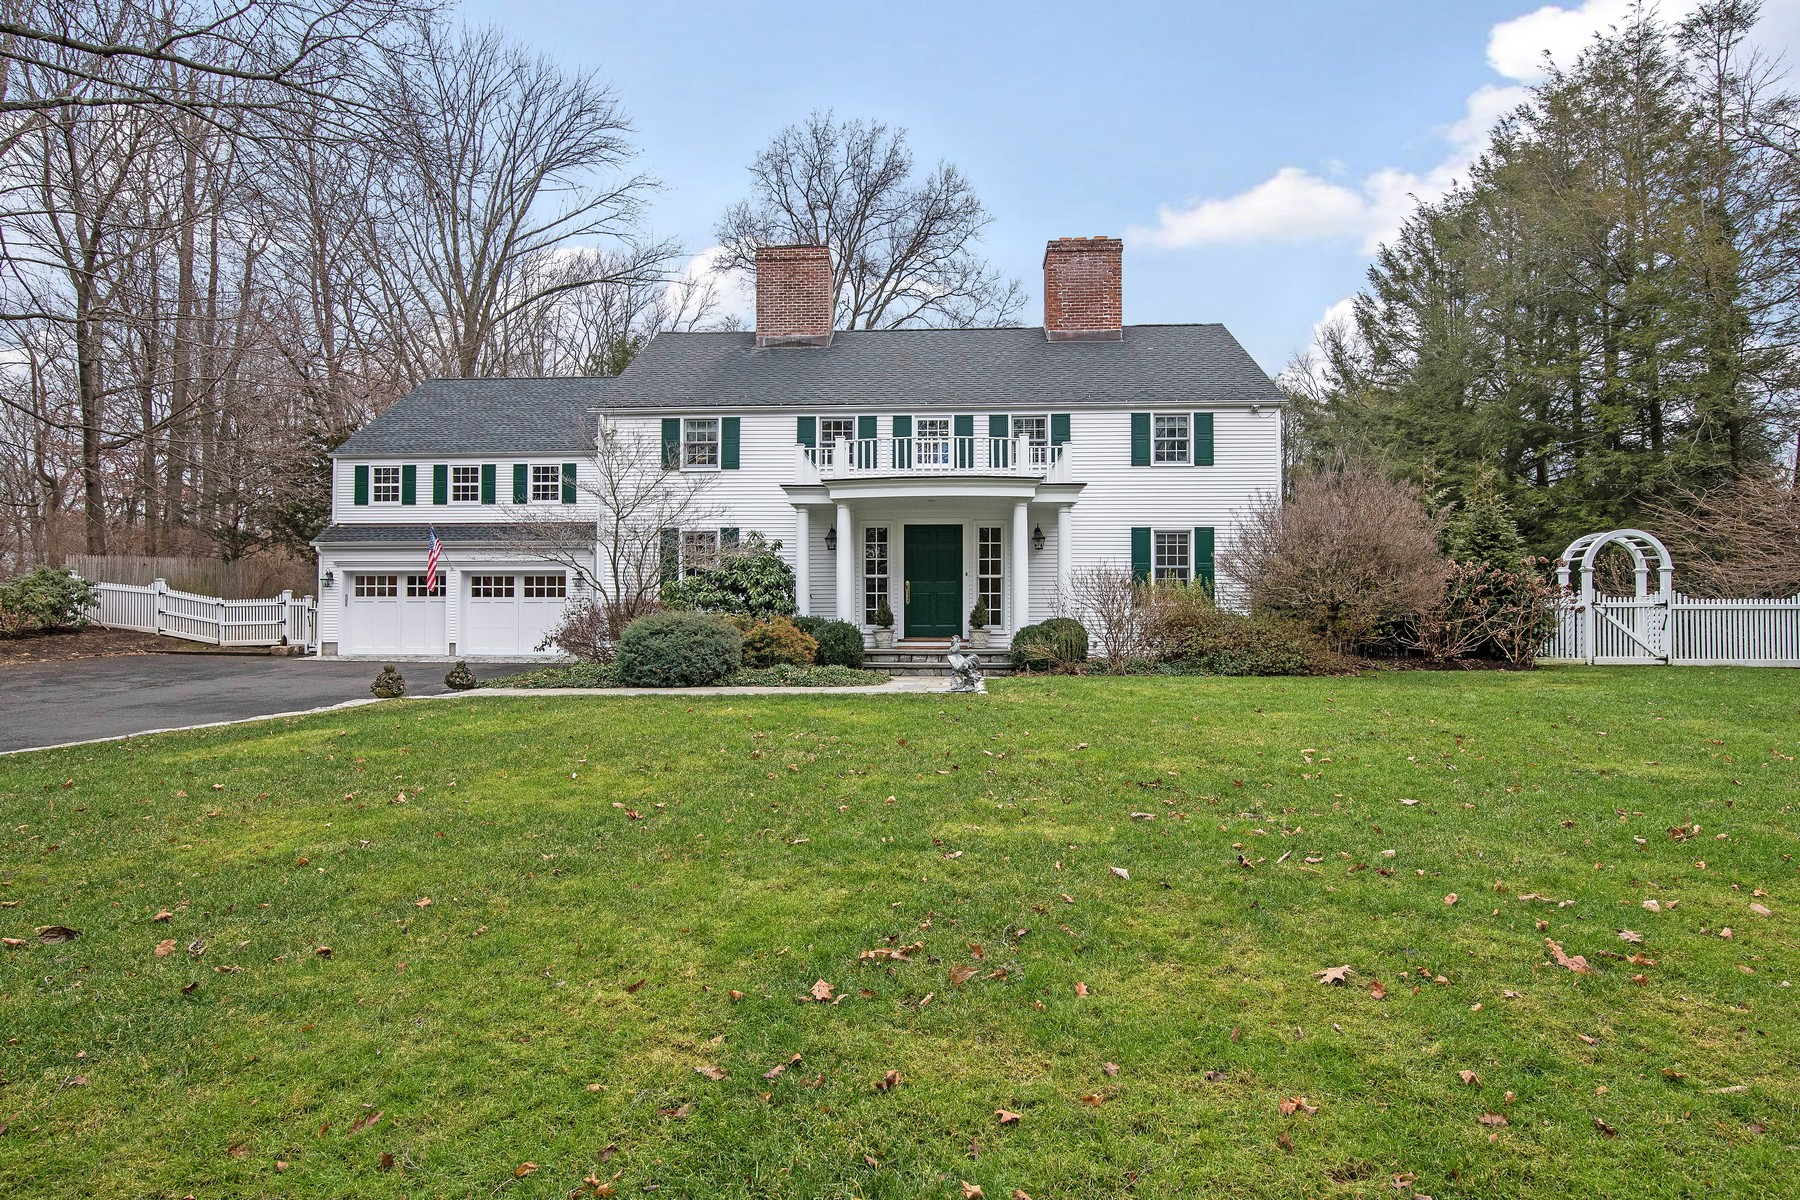 Single Family Home for Sale at Quintessential New England Colonial 142 Brookside Road Darien, Connecticut, 06820 United States